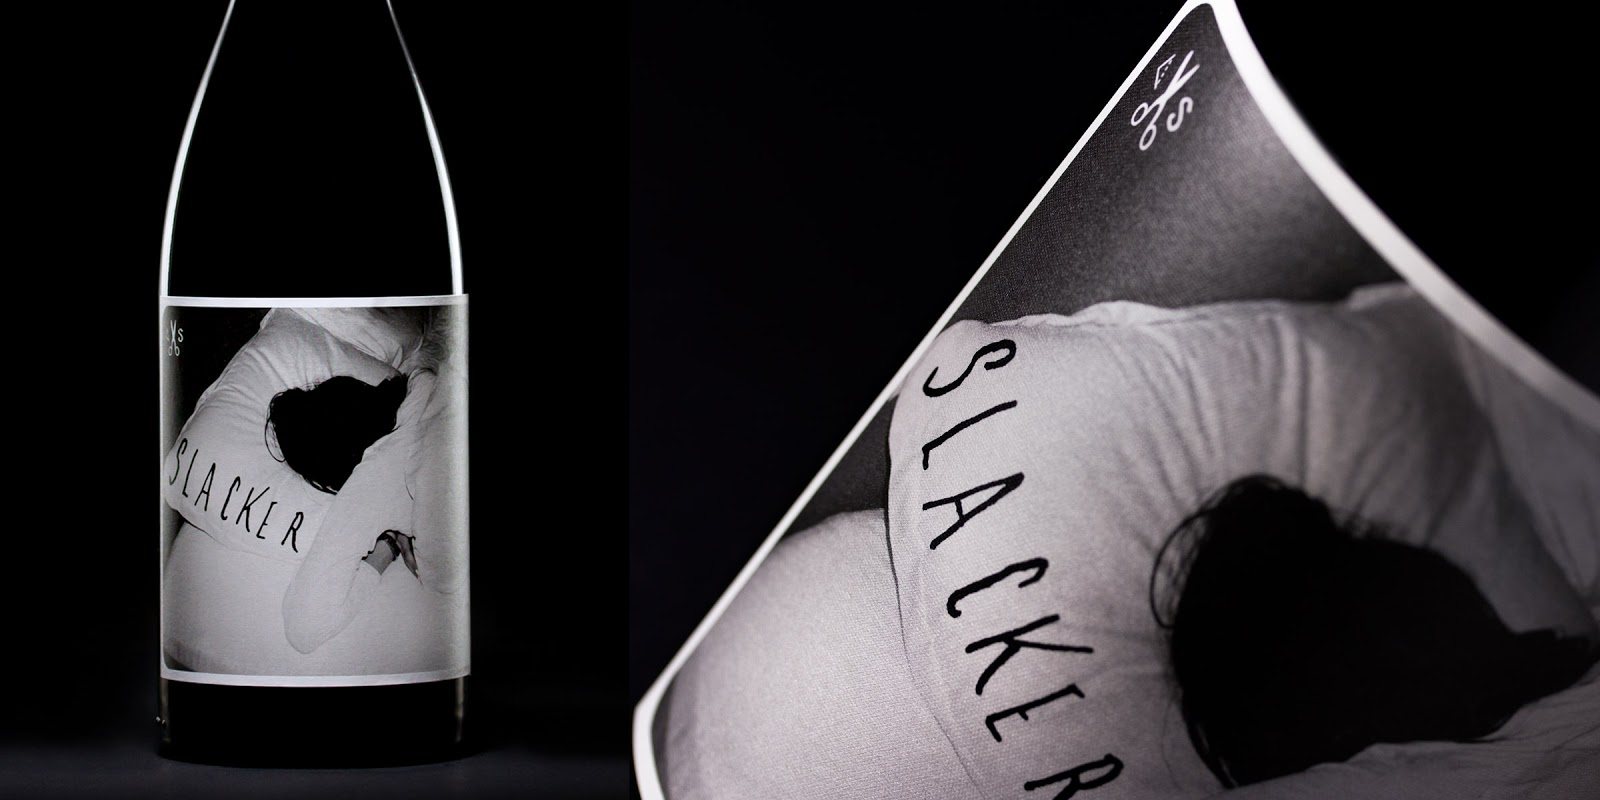 Slacker Wines - The Art of Cutting Corners on Packaging of